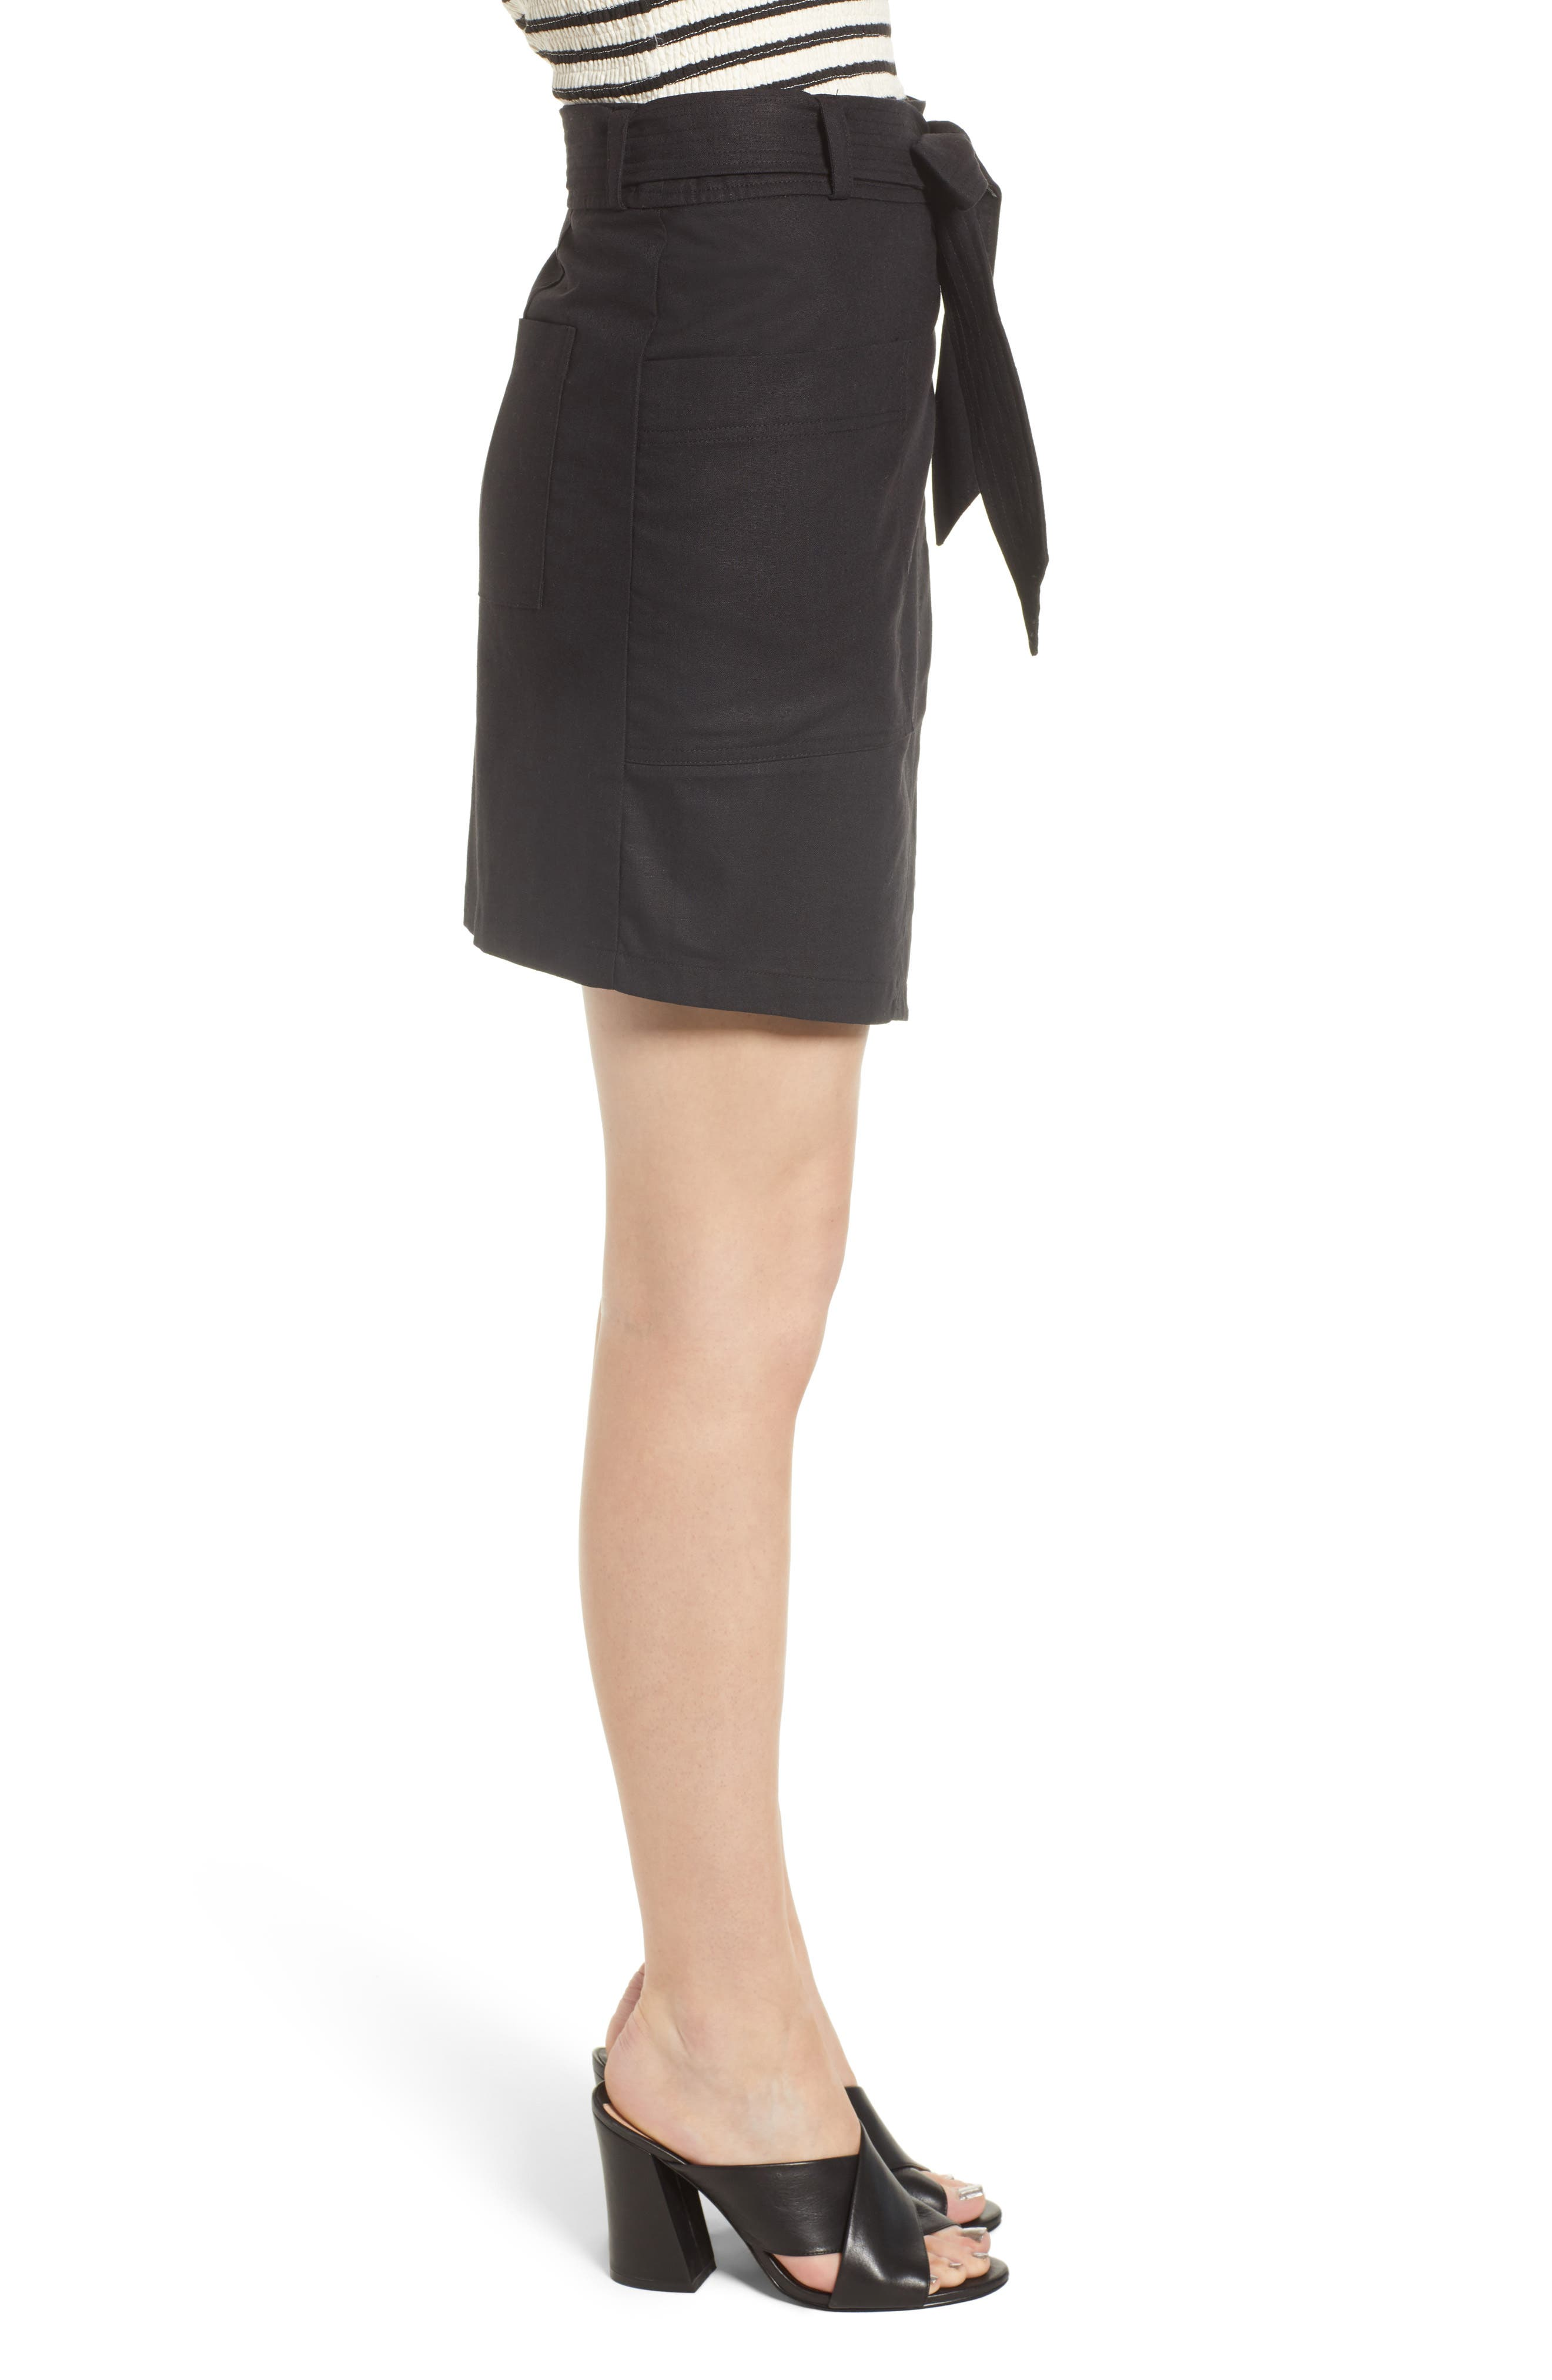 BISHOP + YOUNG,                             Tie Front Wrap Style Skirt,                             Alternate thumbnail 3, color,                             001